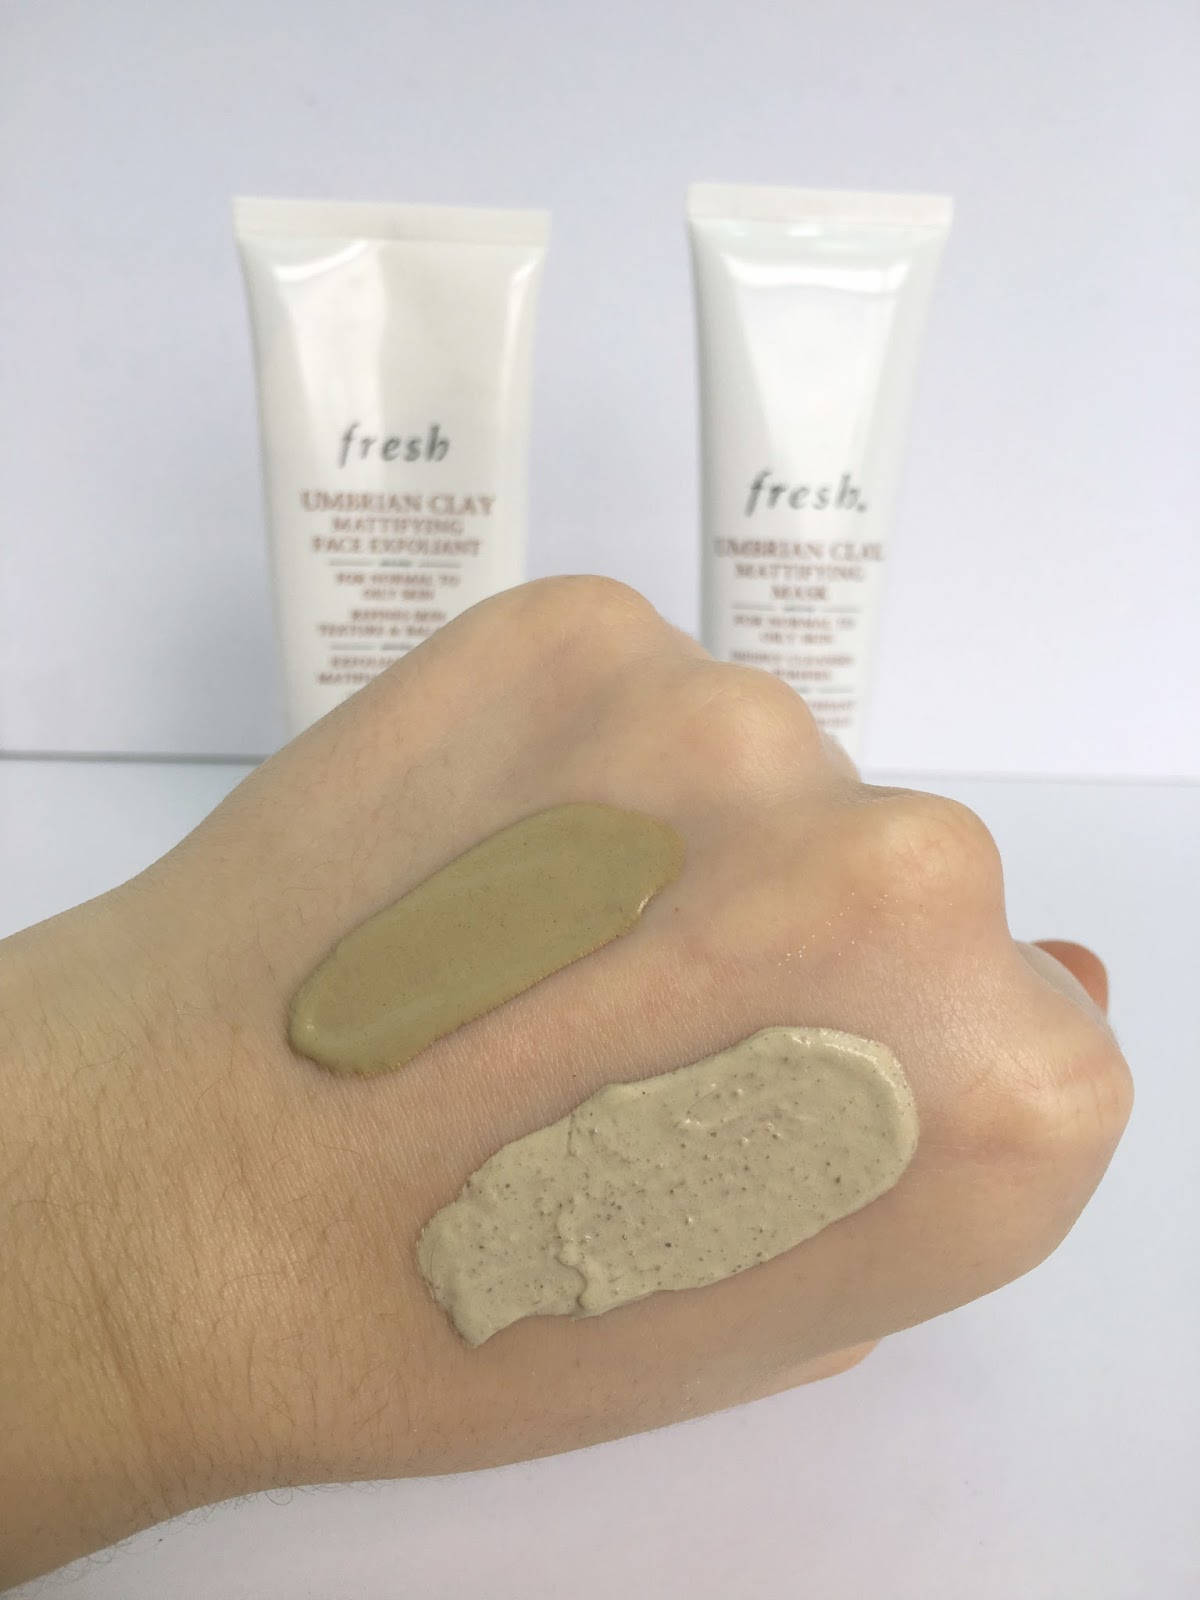 Fresh Umbrian Clay Review